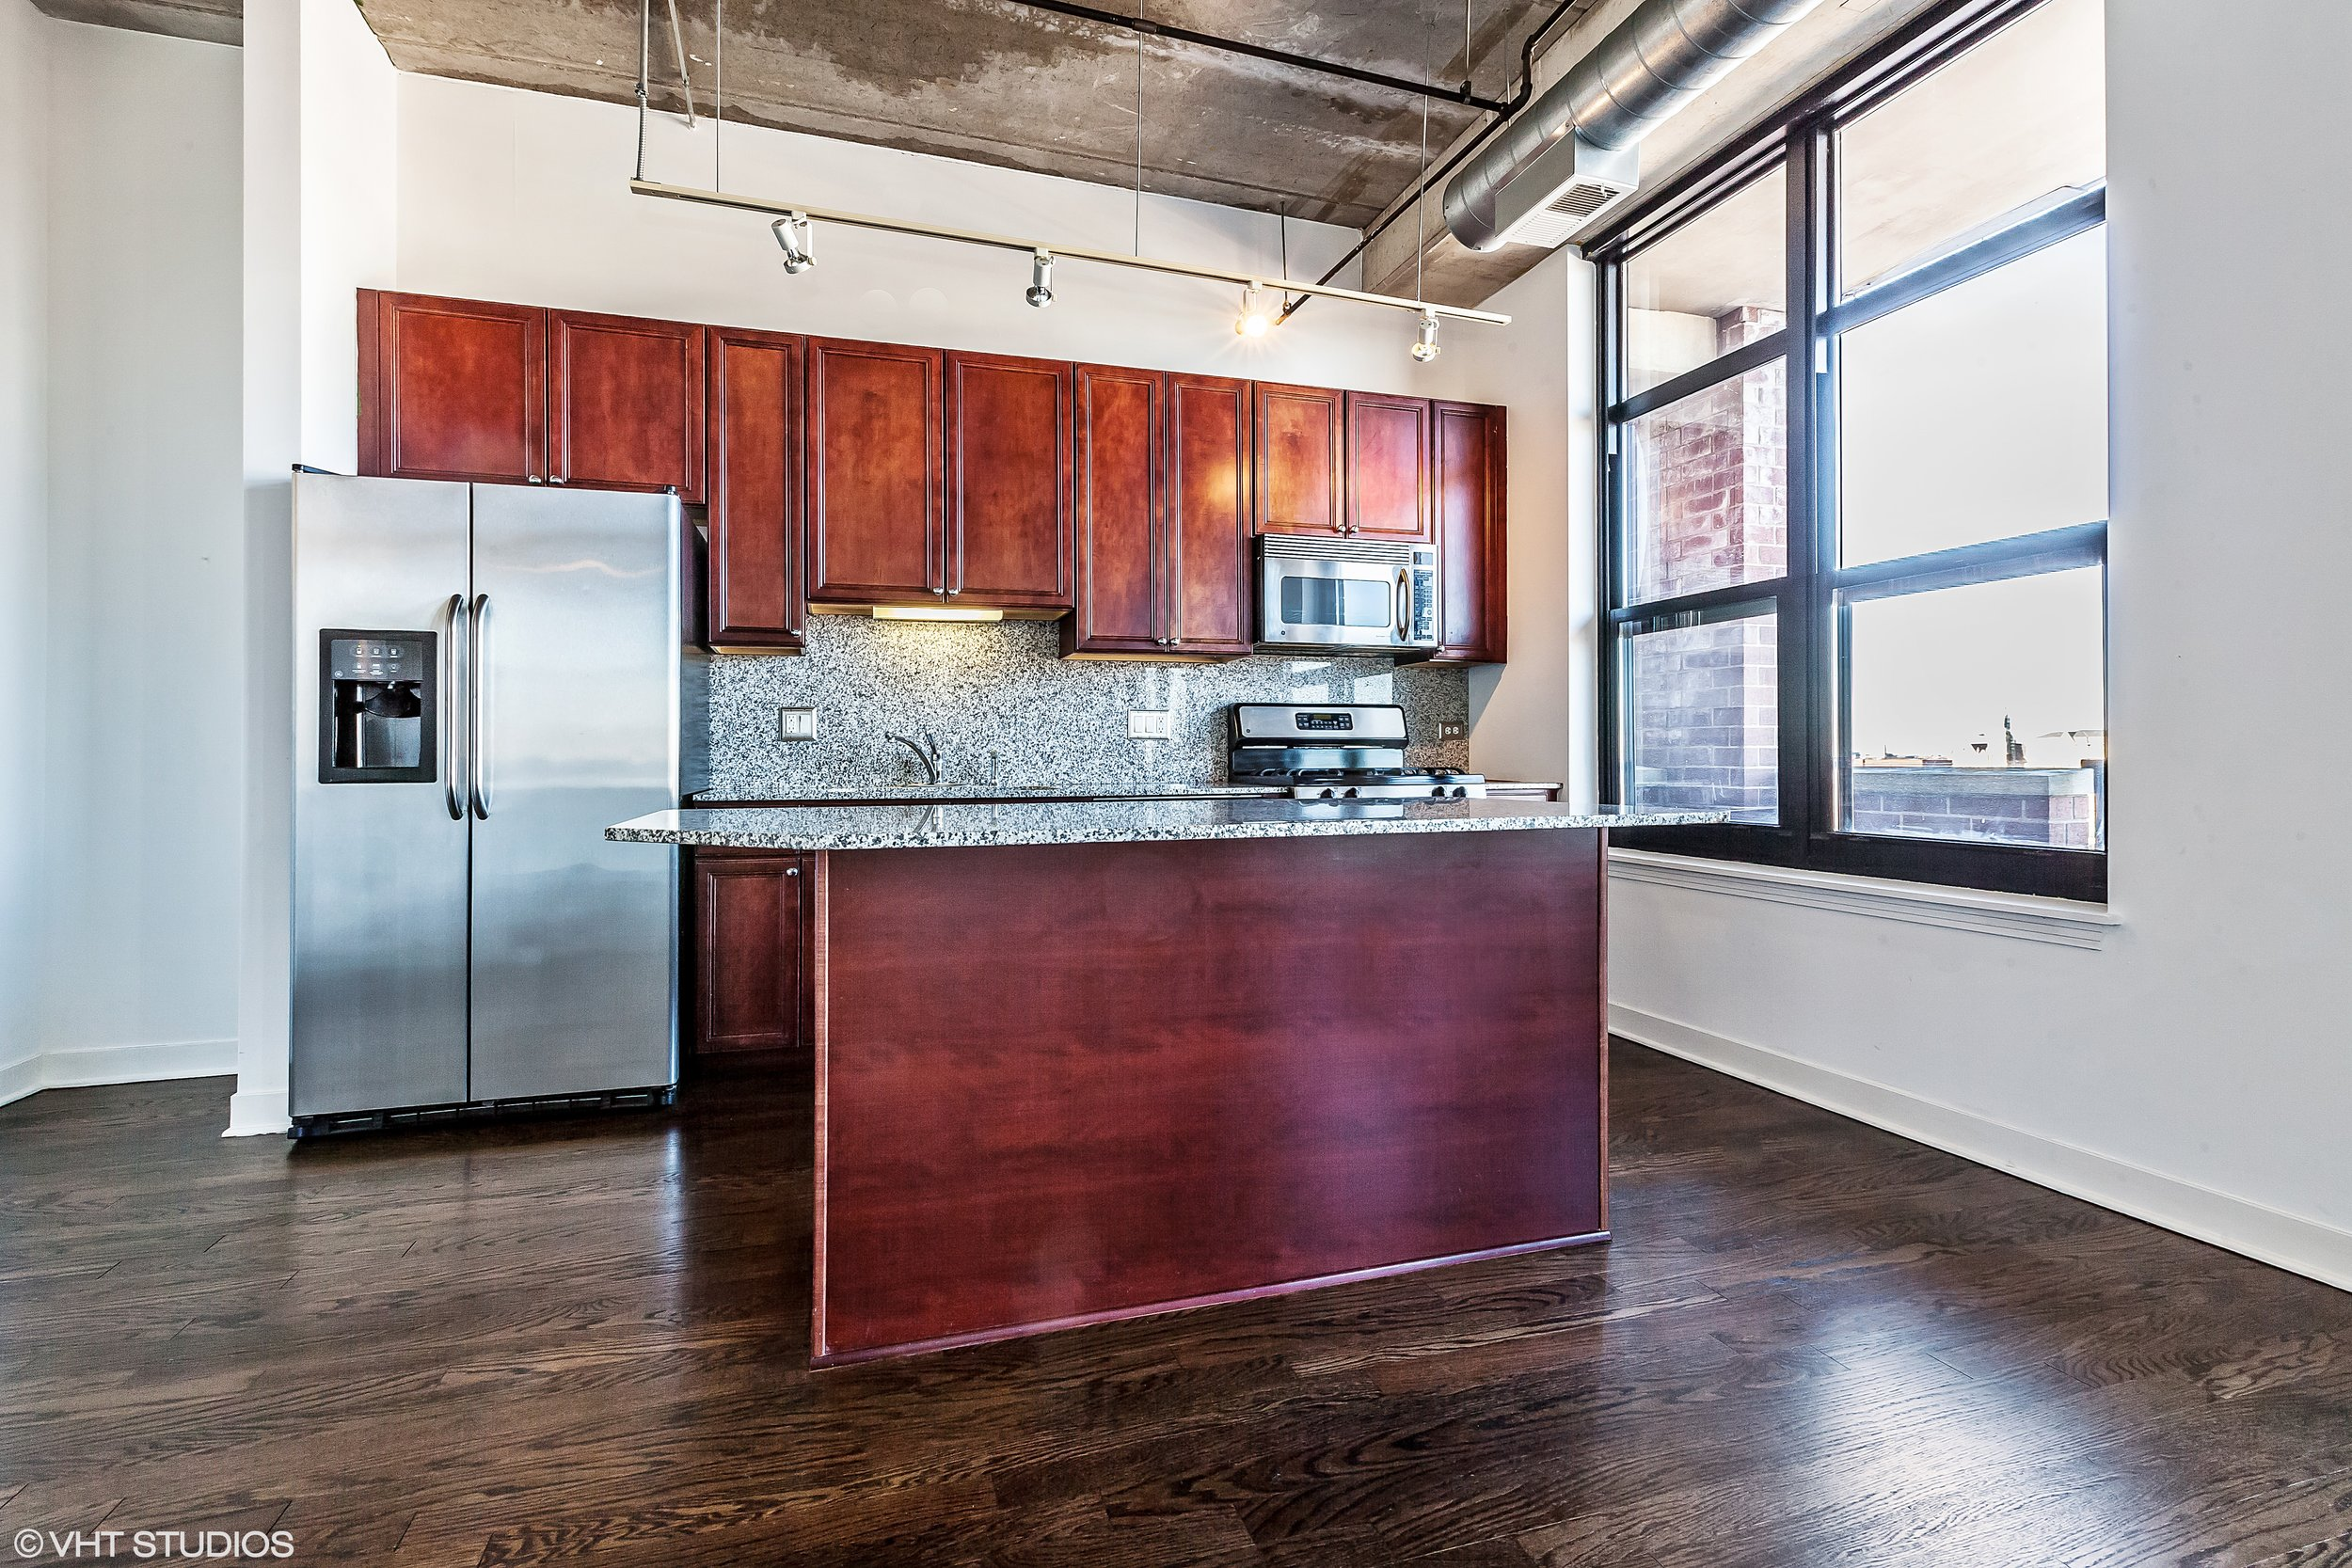 05_833West15ThPl_704_177_Kitchen_HiRes.jpg